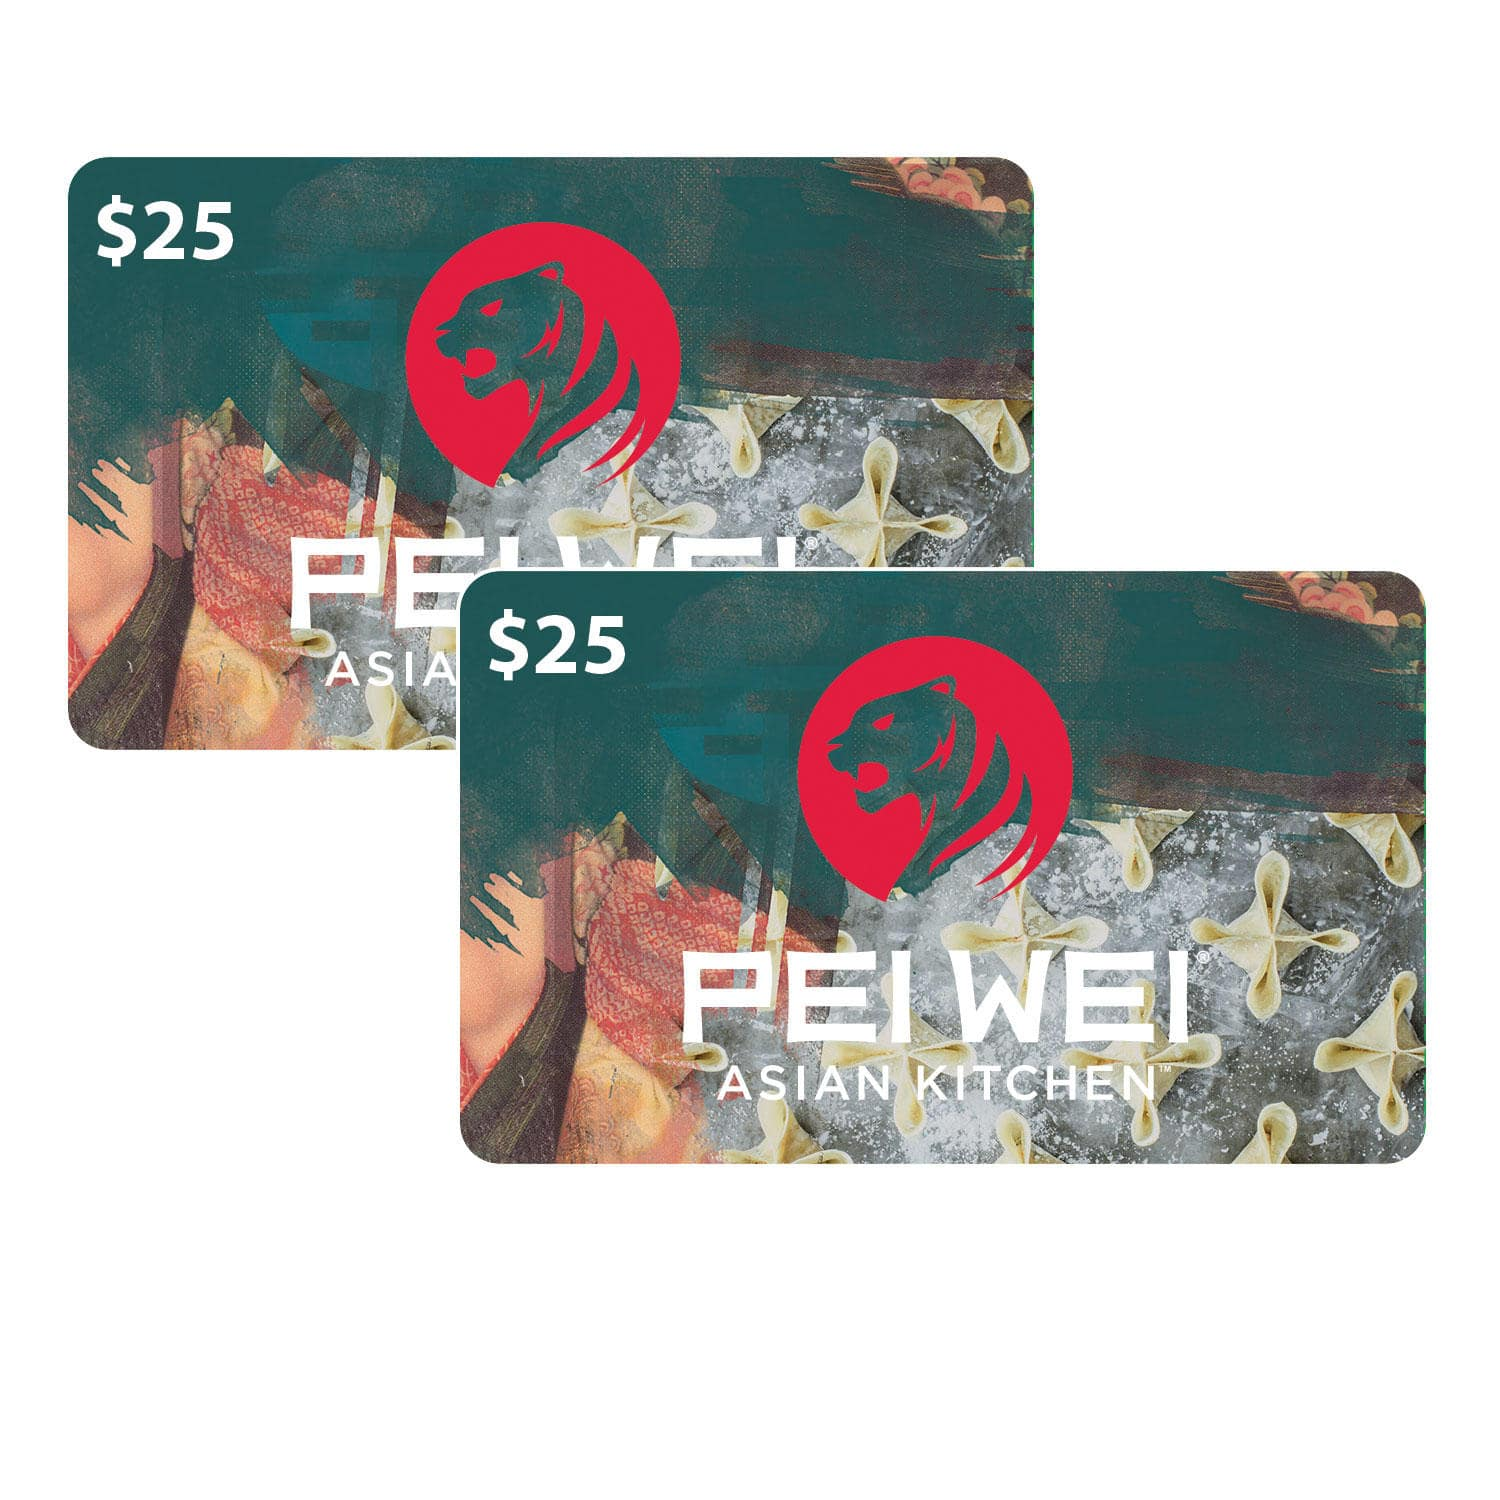 Sam's Club, $50 restaurant gift cards, $37.50, Pei Wei Asian Kitchen, Potbelly Sandwiches, O'Charley's